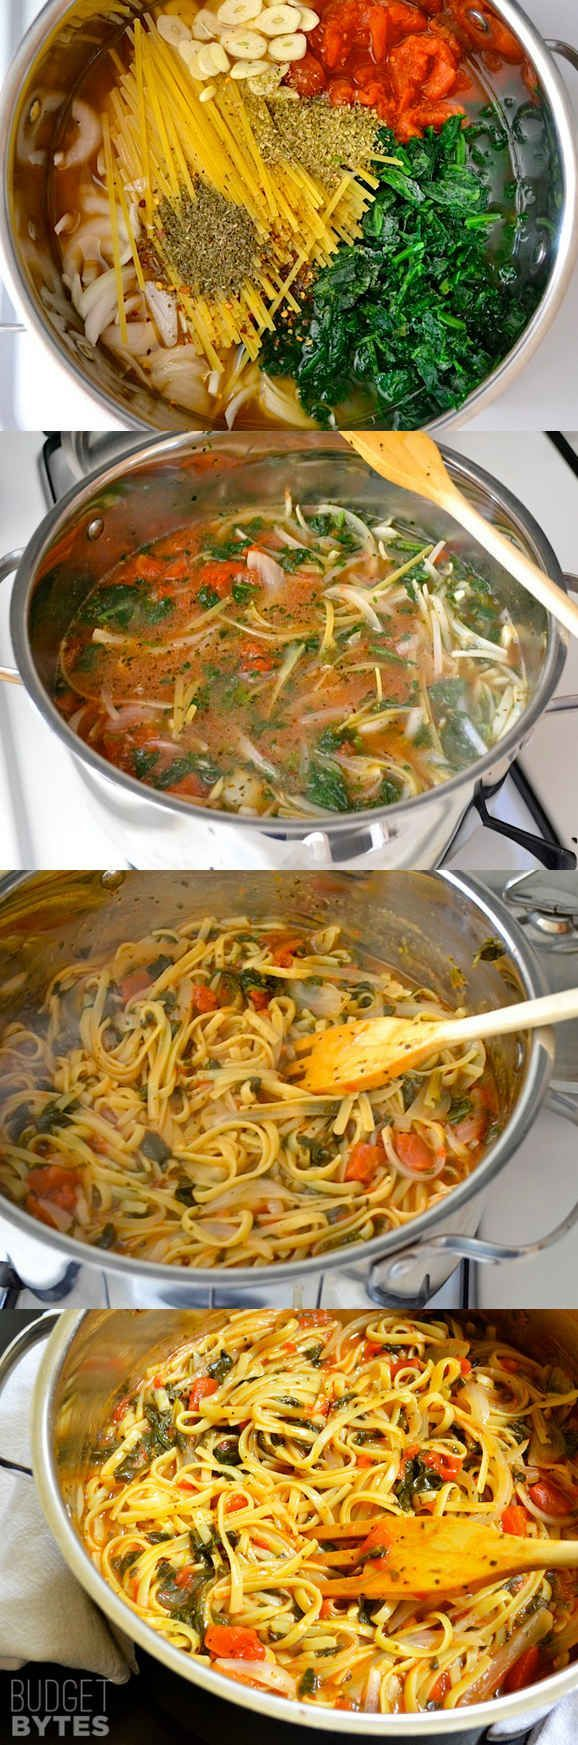 Italian Wonderpot - Simple to make. I used Thyme instead of Basil because I didn't have any. Not a super exciting dish but nice if you are on a time crunch. Great Recipe!